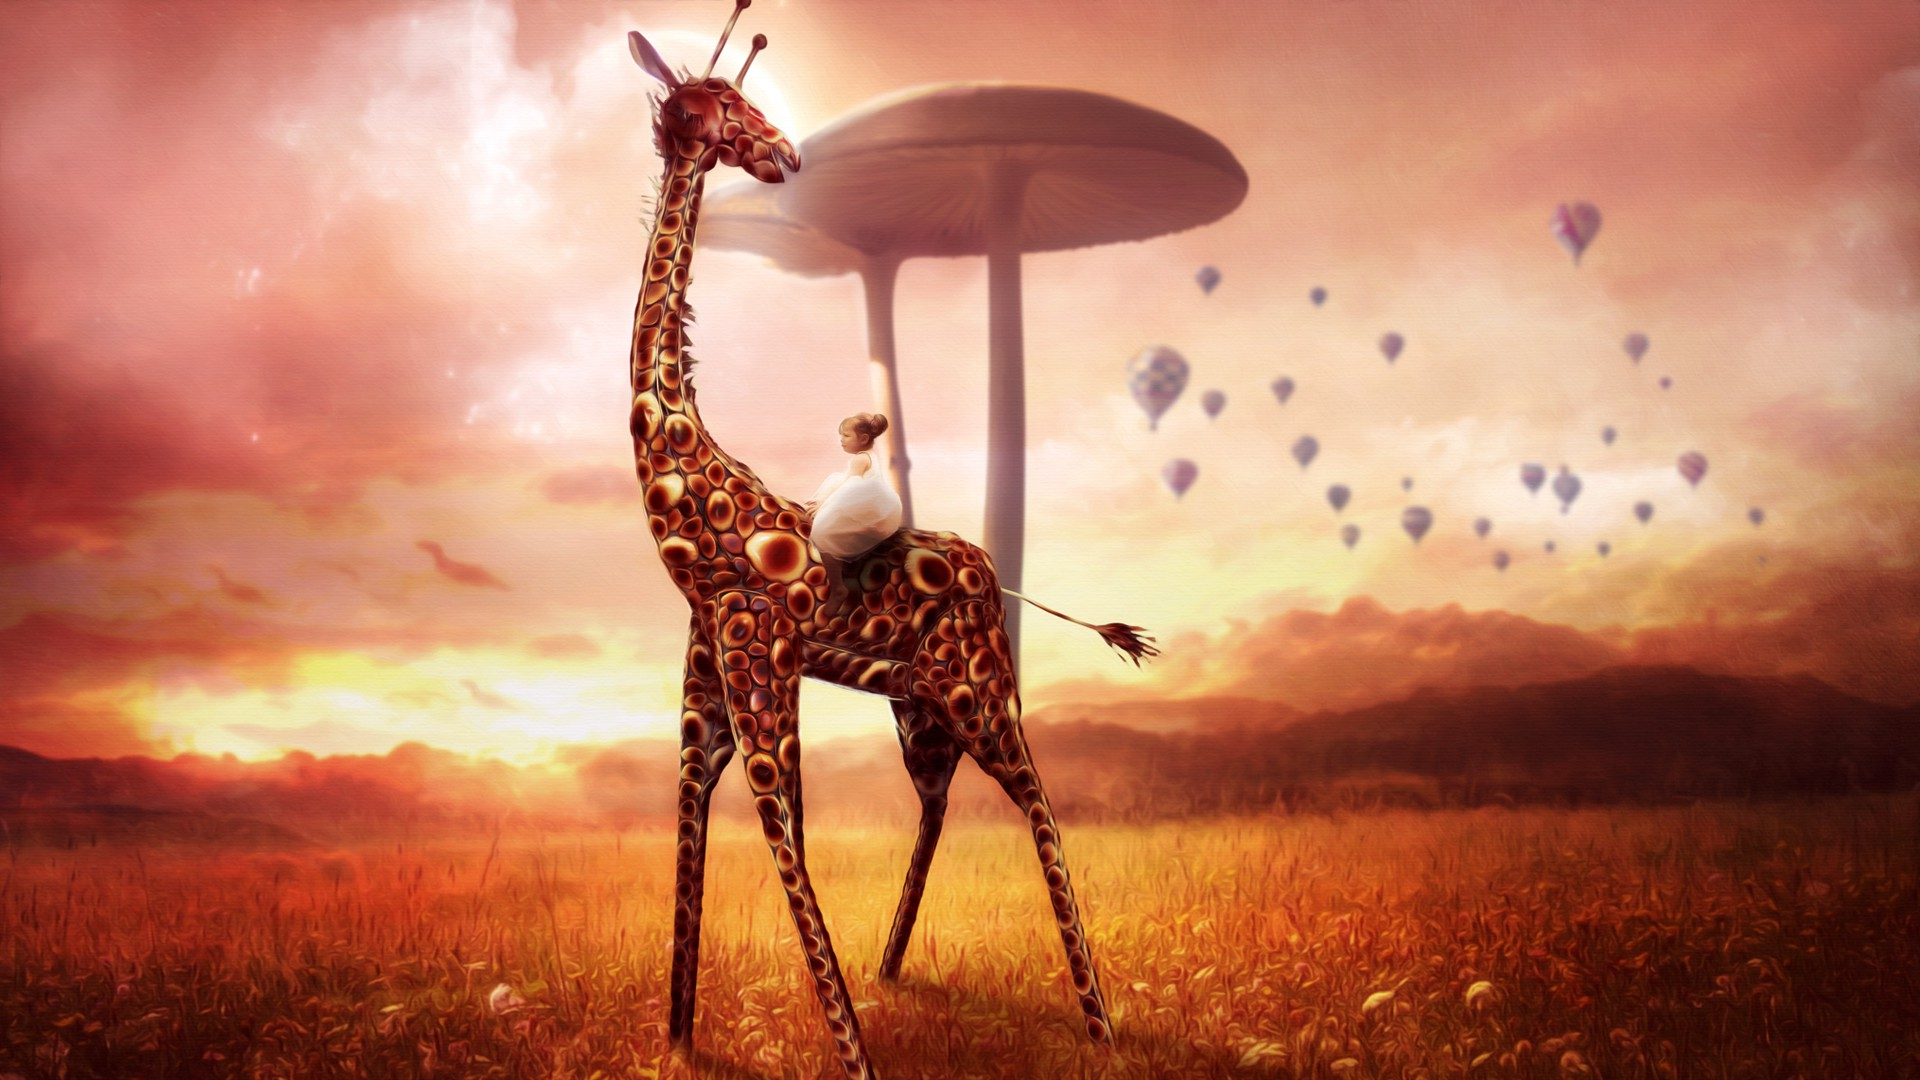 Giraffe Dream Art Creative Wallpaper   New HD Wallpapers 1920x1080